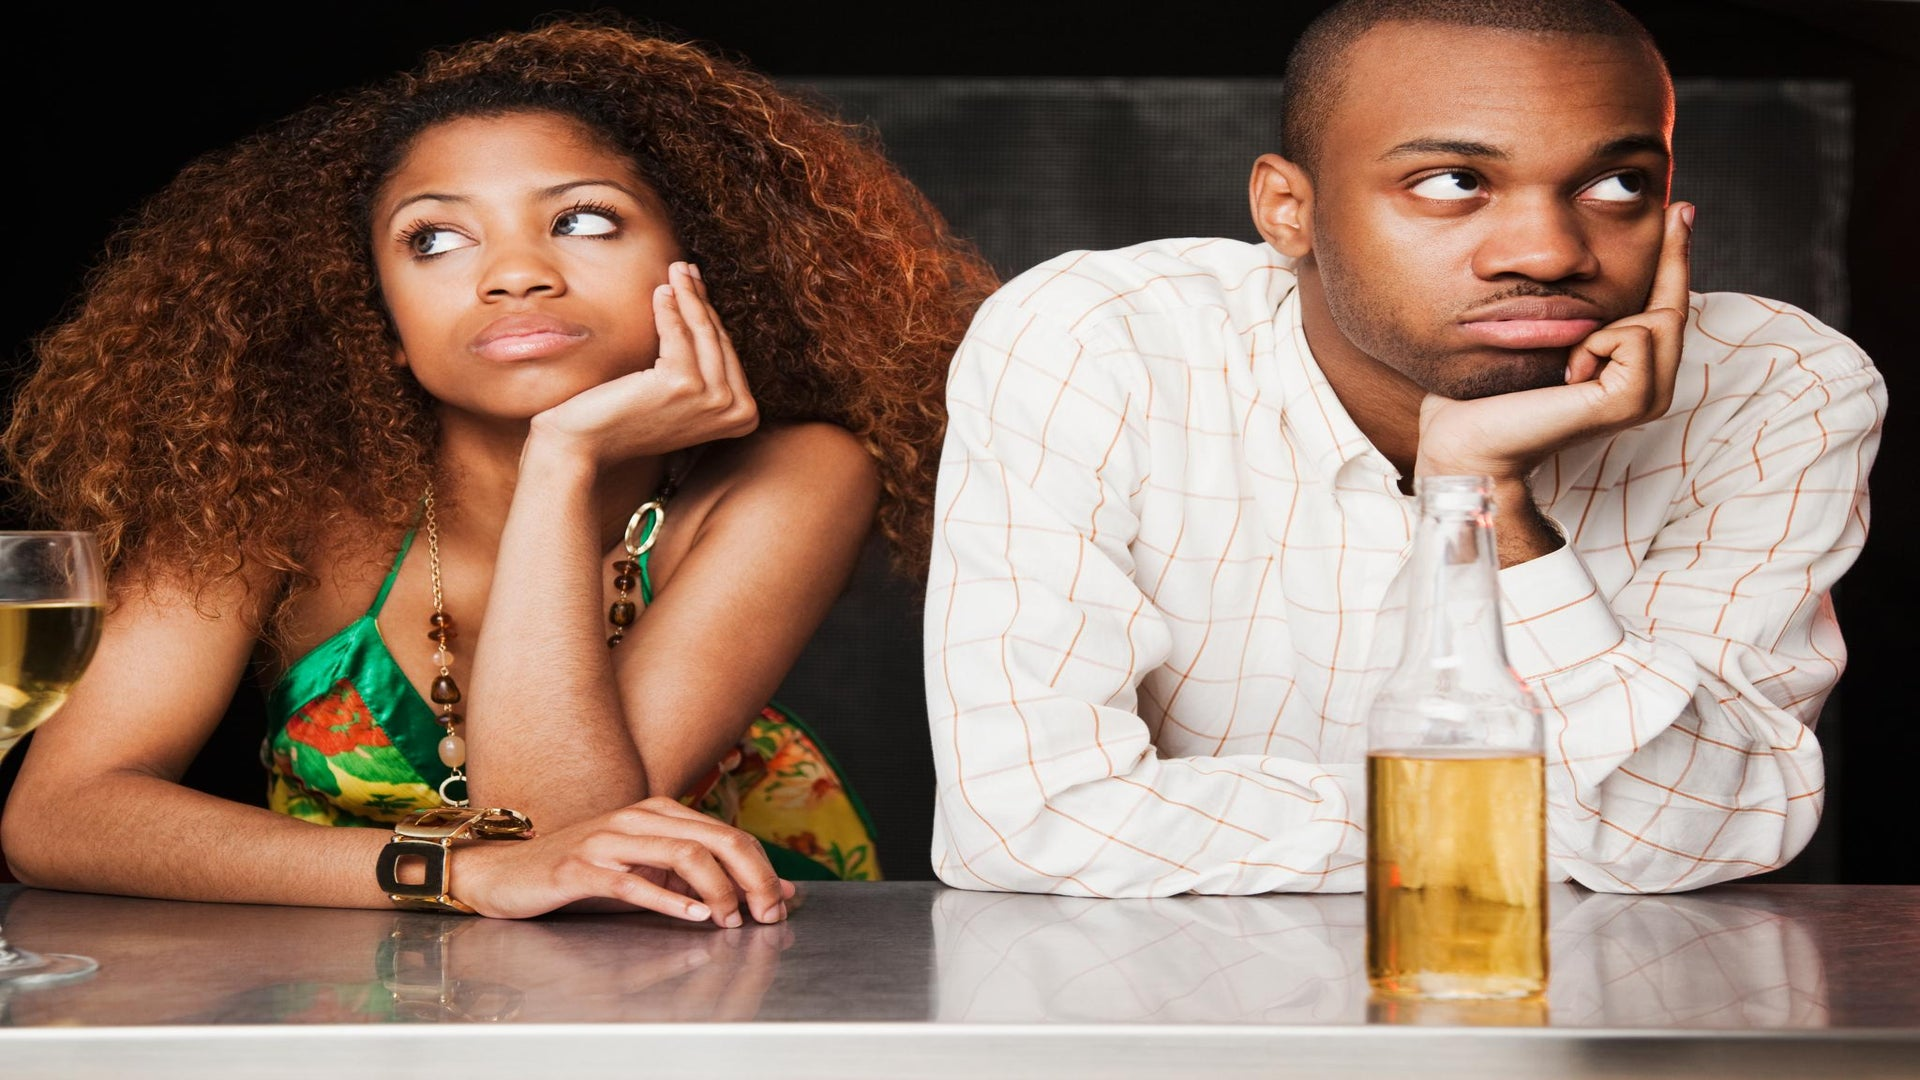 ESSENCE Poll: What Do You Do When You Think a Friend Has Made a Questionable Dating Decision?